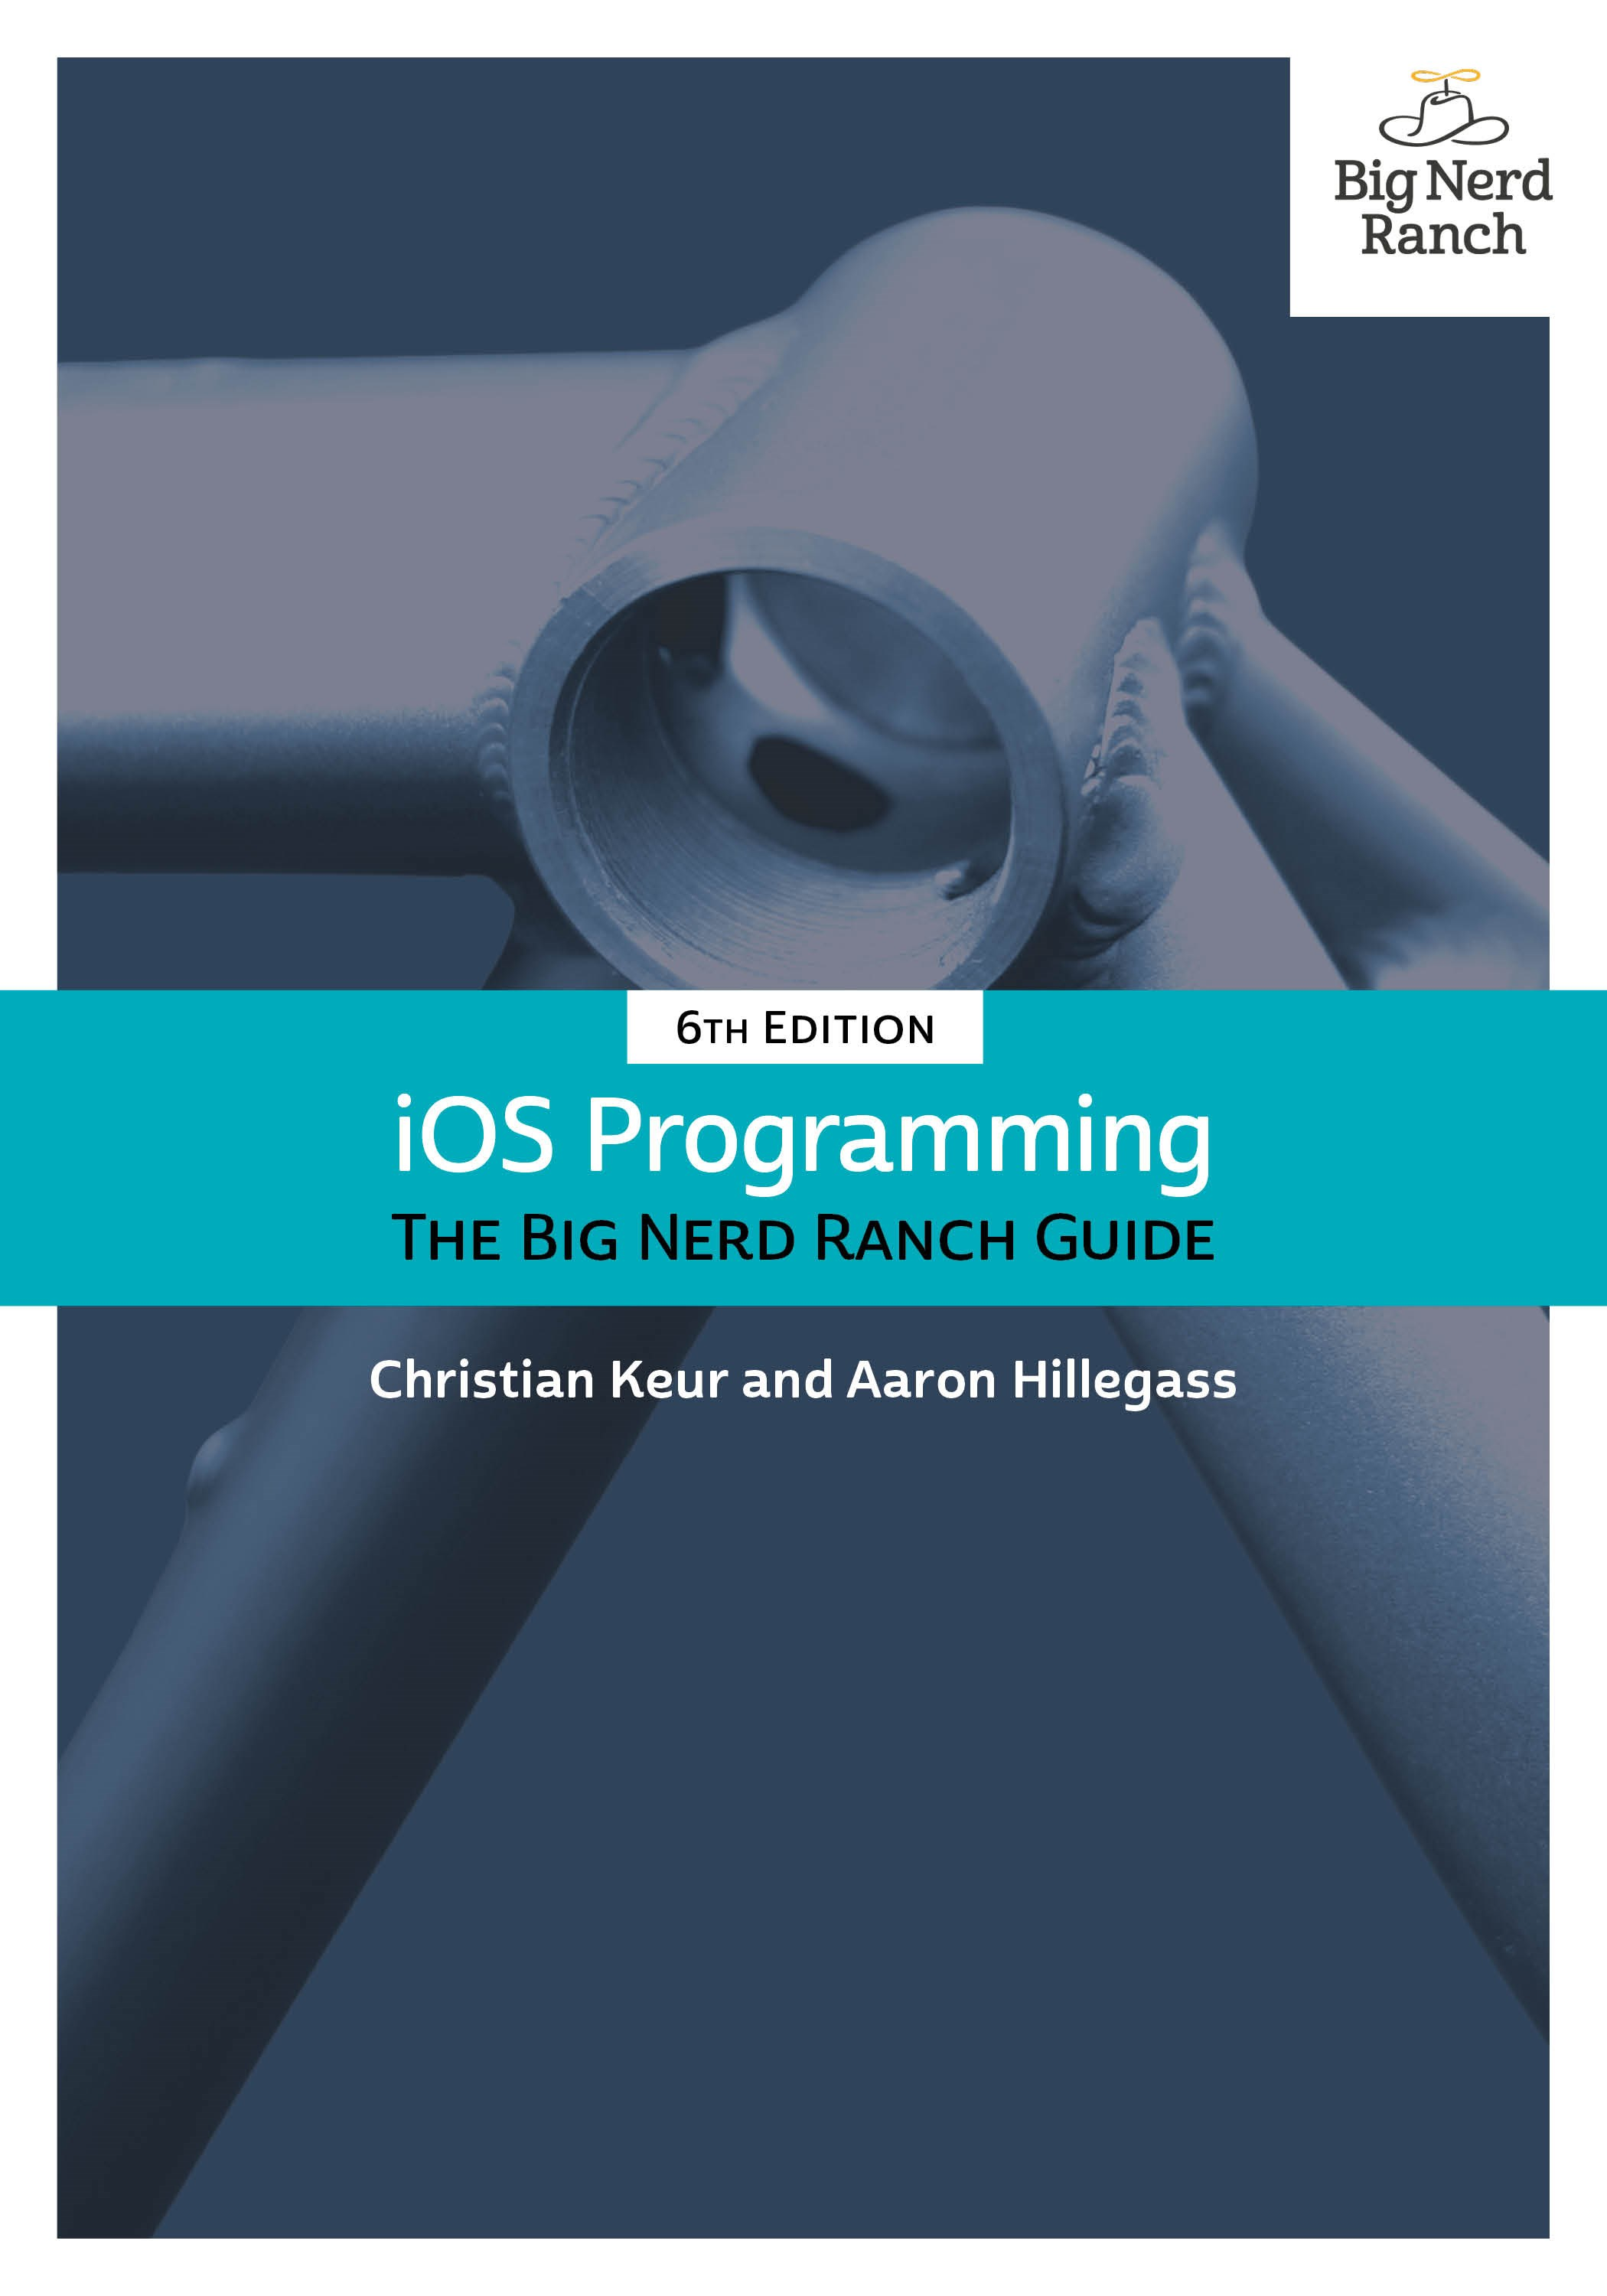 iOS Programming: The Big Nerd Ranch Guide, 6th Edition